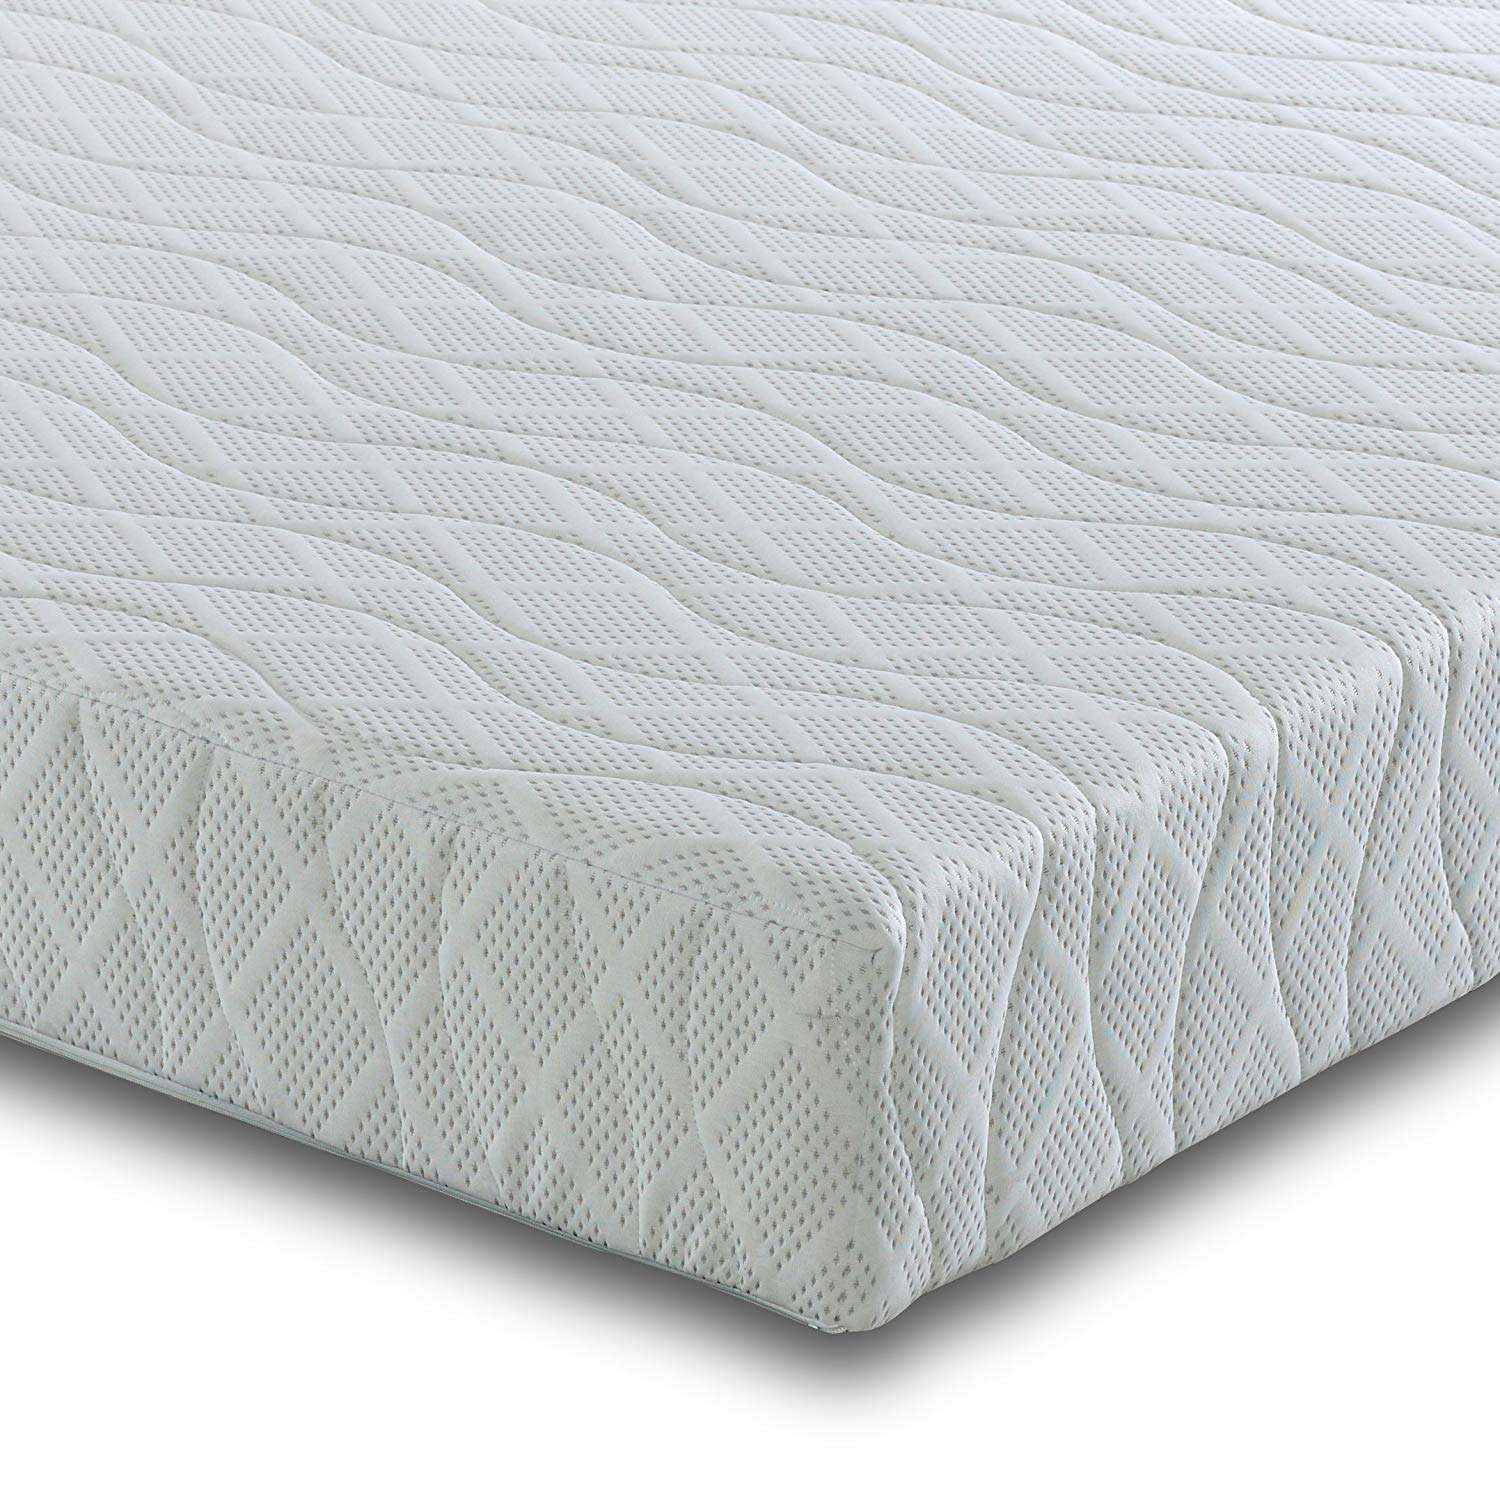 Visco Therapy Orthopaedic Firm Reflex Foam 1500 Rolled Mattress, Small Single